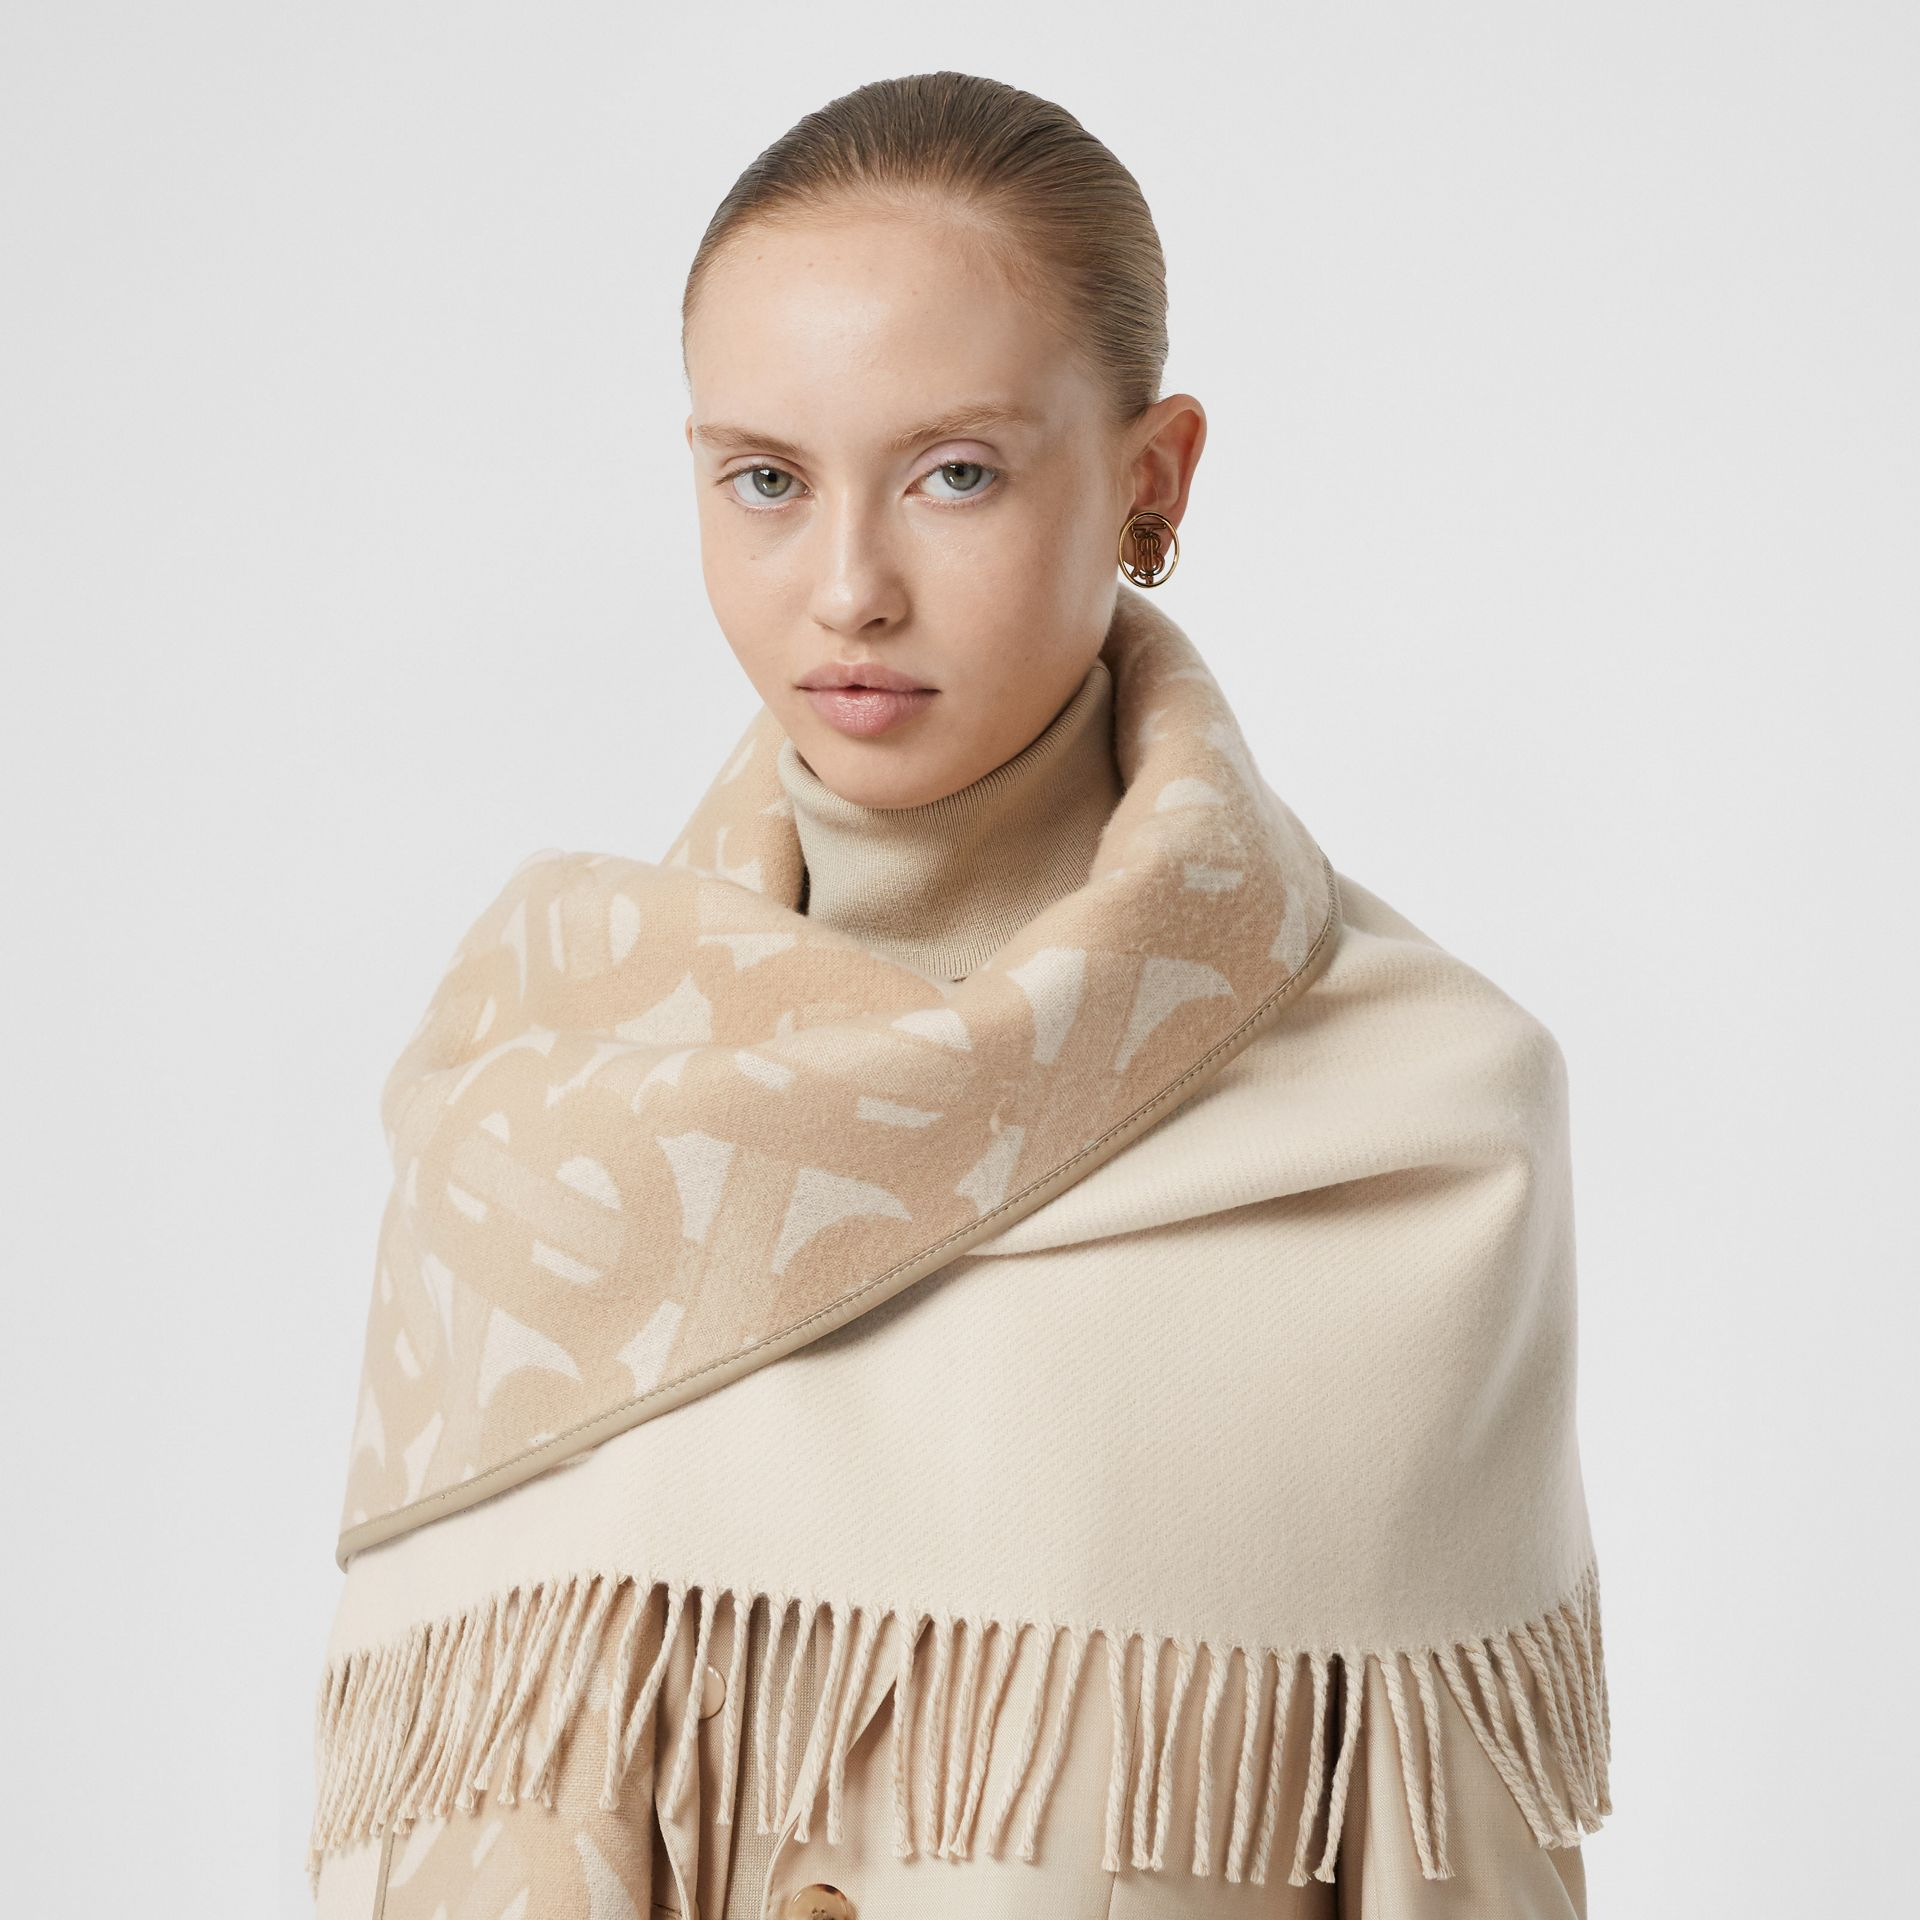 Monogram Merino Wool Cashmere Jacquard Cape in Soft Fawn - Women | Burberry United Kingdom - gallery image 1